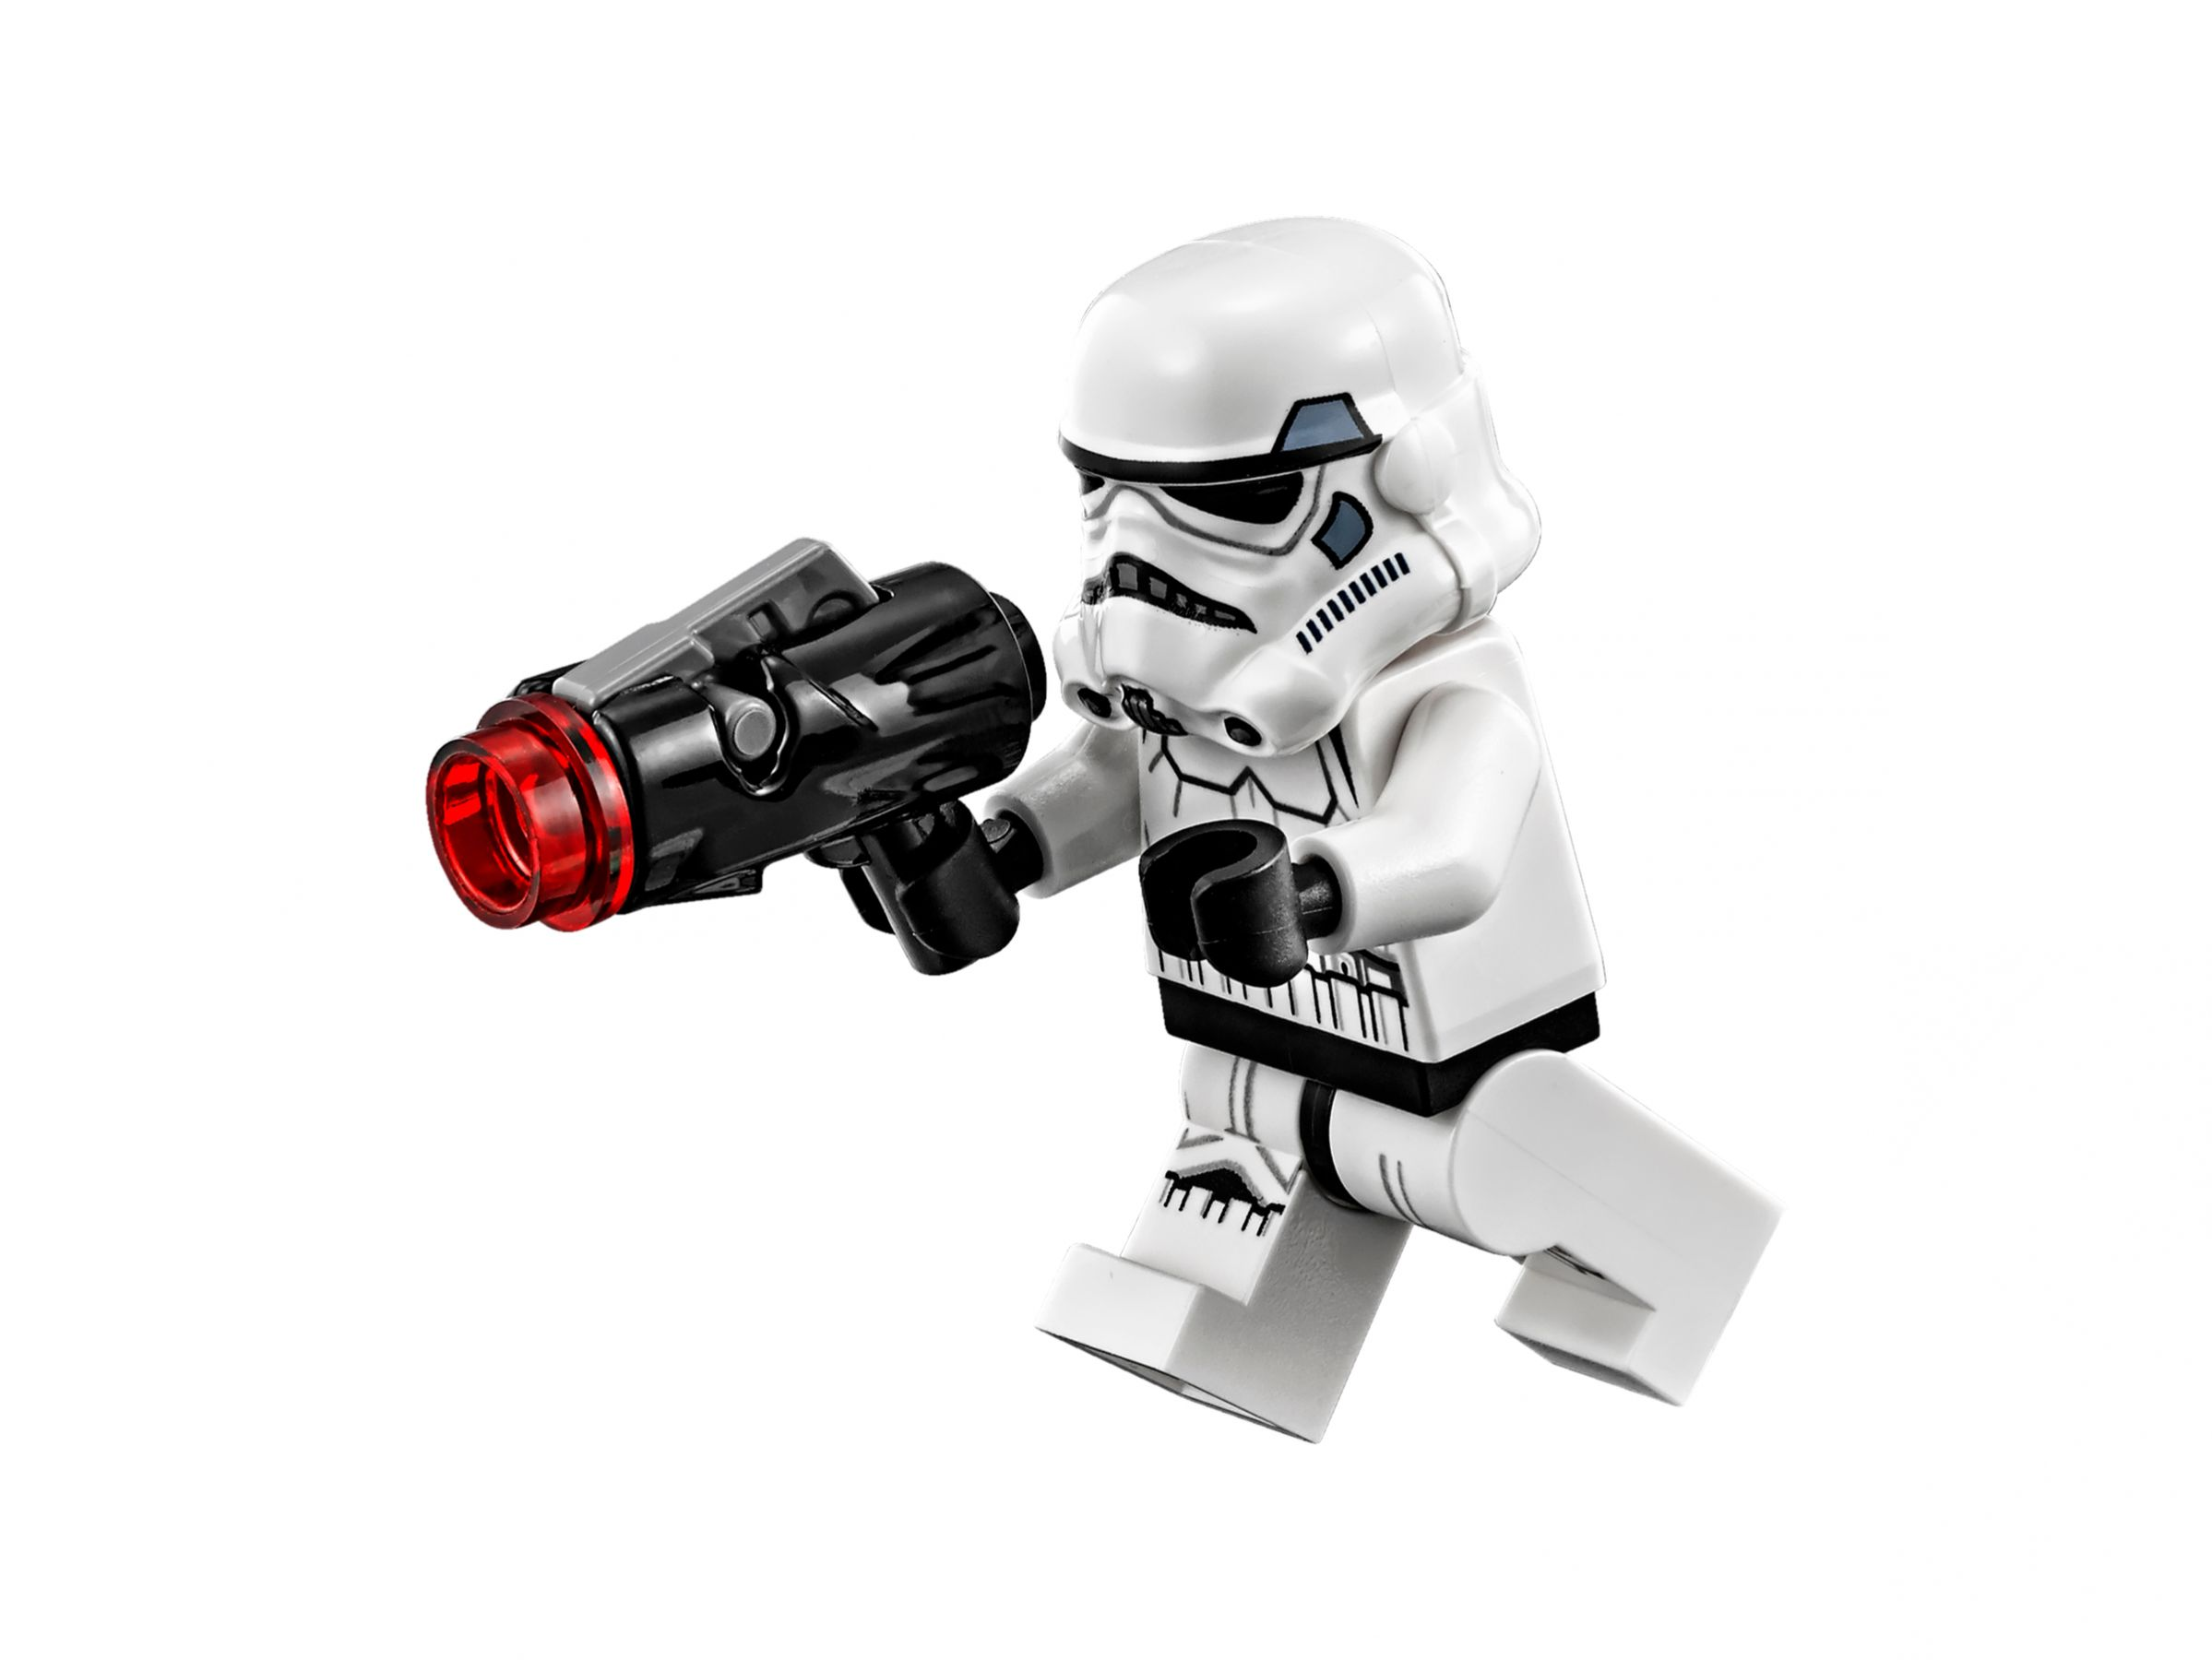 LEGO Star Wars 75165 Imperial Trooper Battle Pack LEGO_75165_alt6.jpg